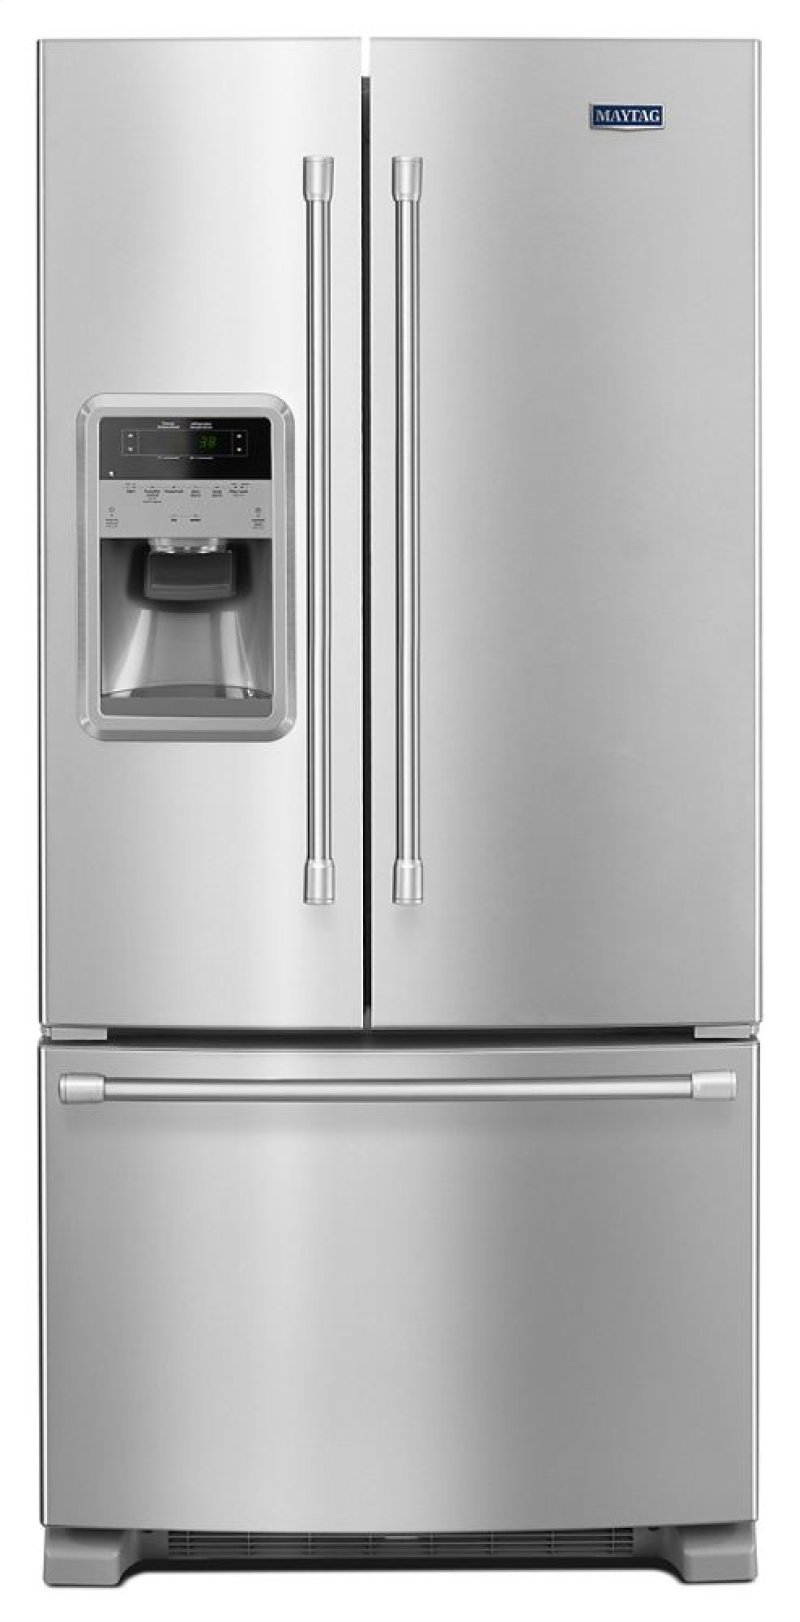 Mfi2269drm In Stainless Steel By Maytag In Winnsboro La 33 Inch